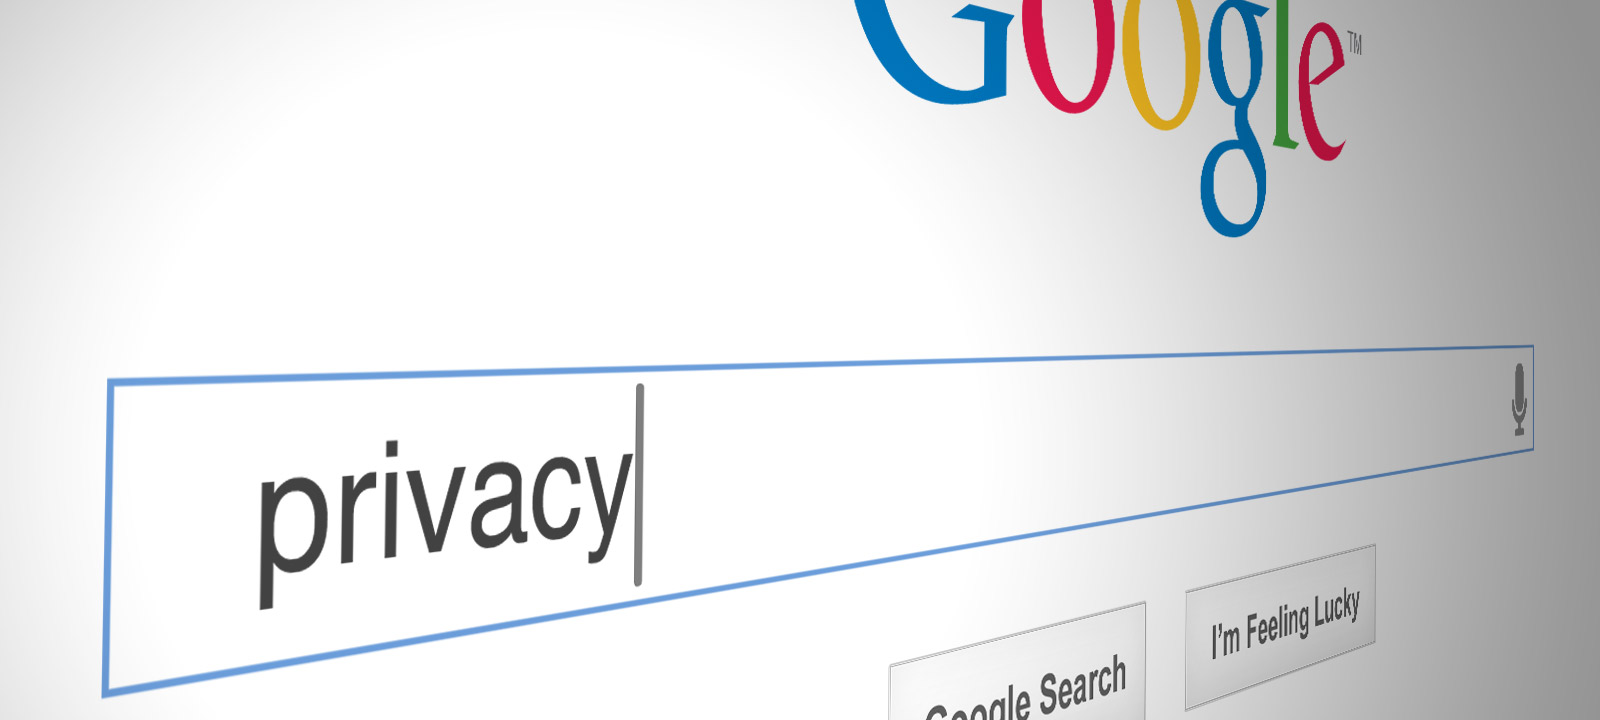 Google+ Shuts Down Over Breach as Google Offers New Privacy